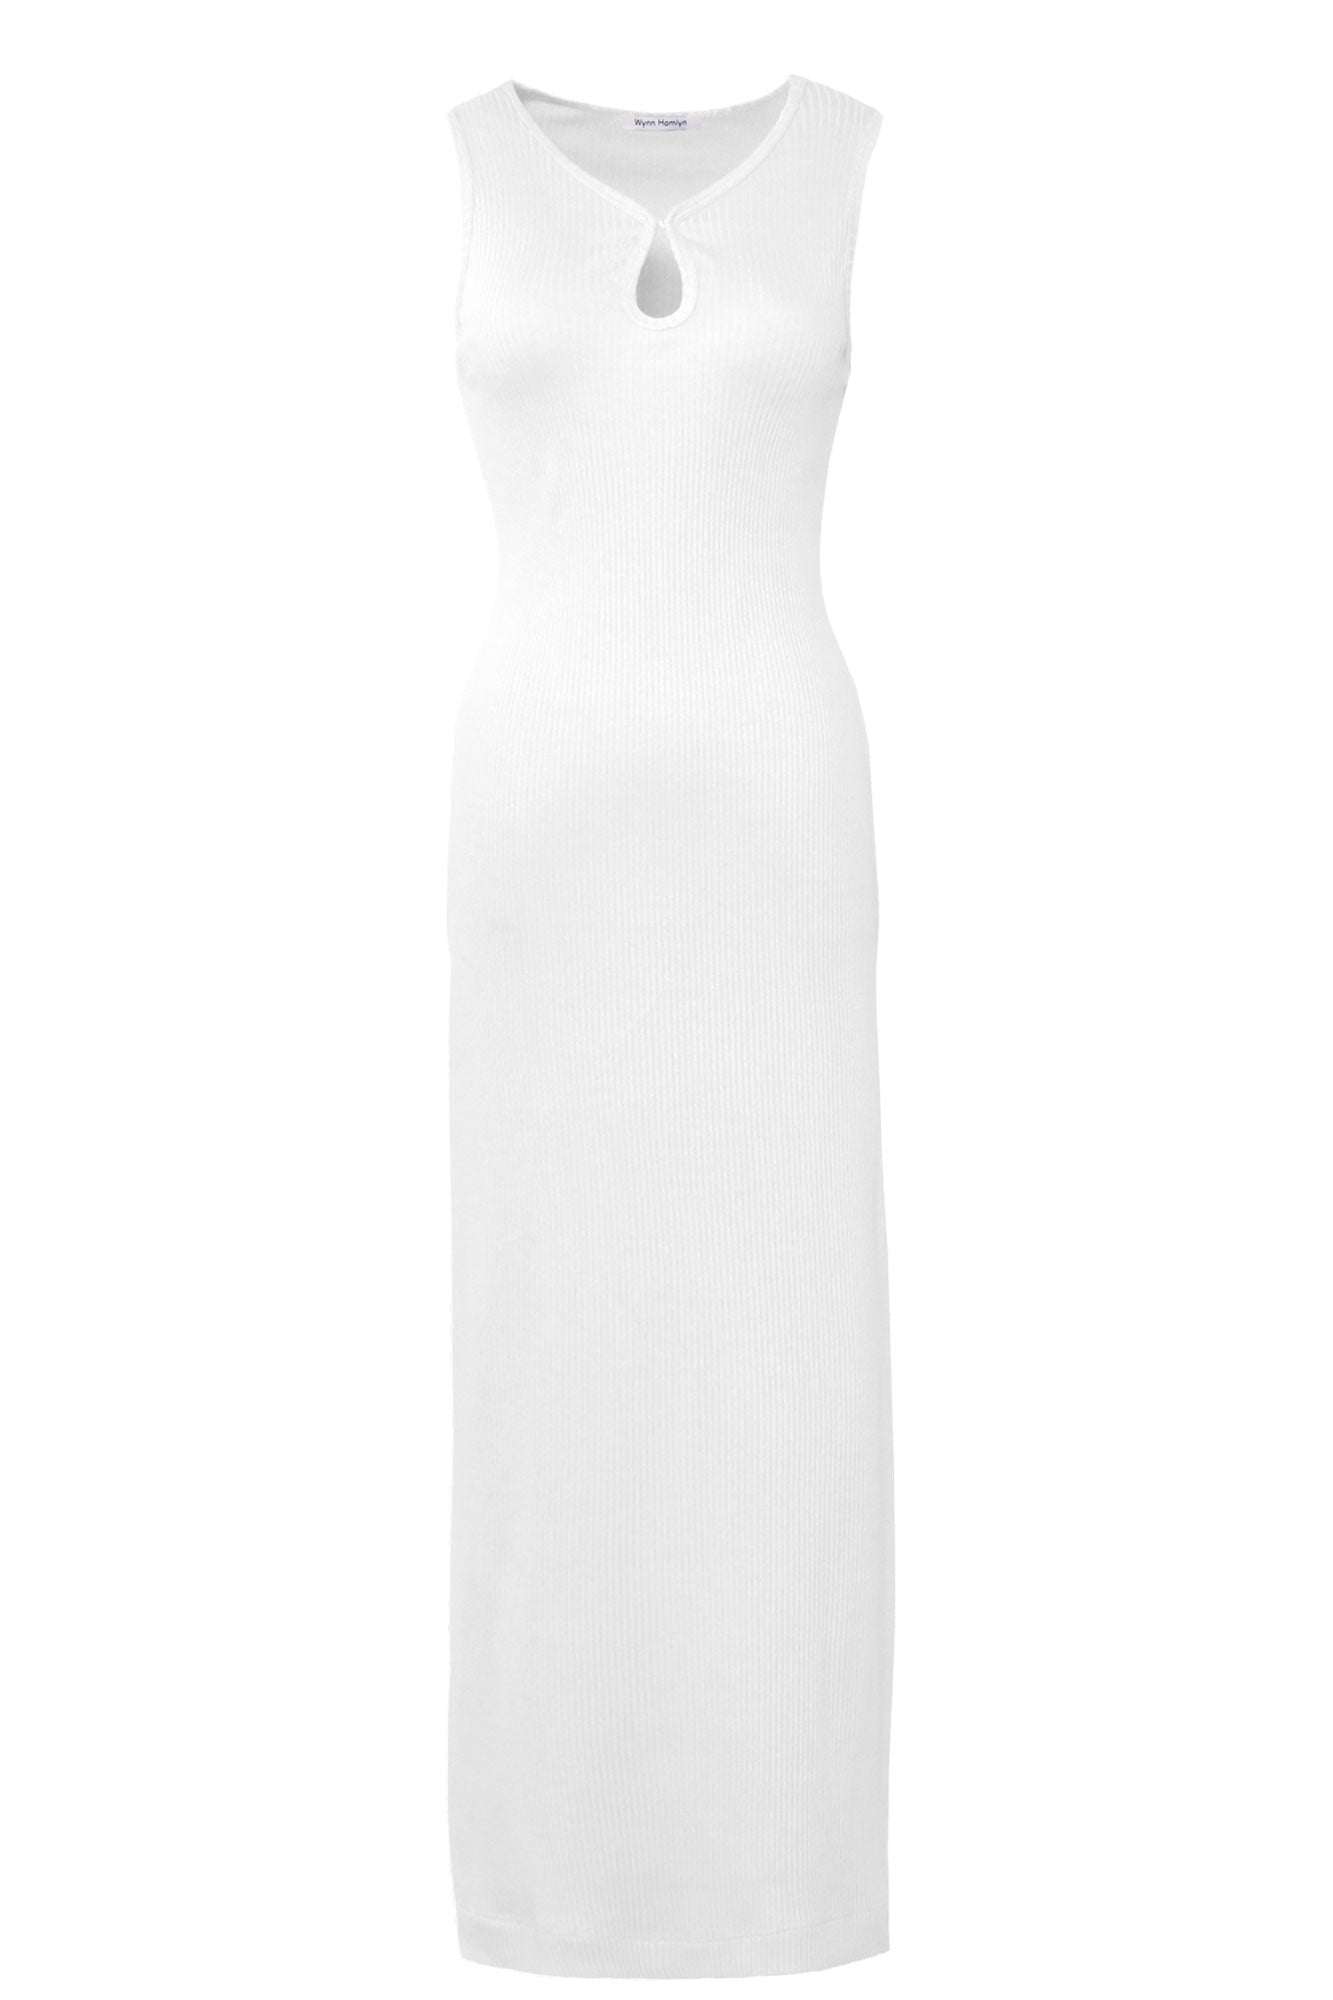 Ribbed Knit Key Hole Dress - White